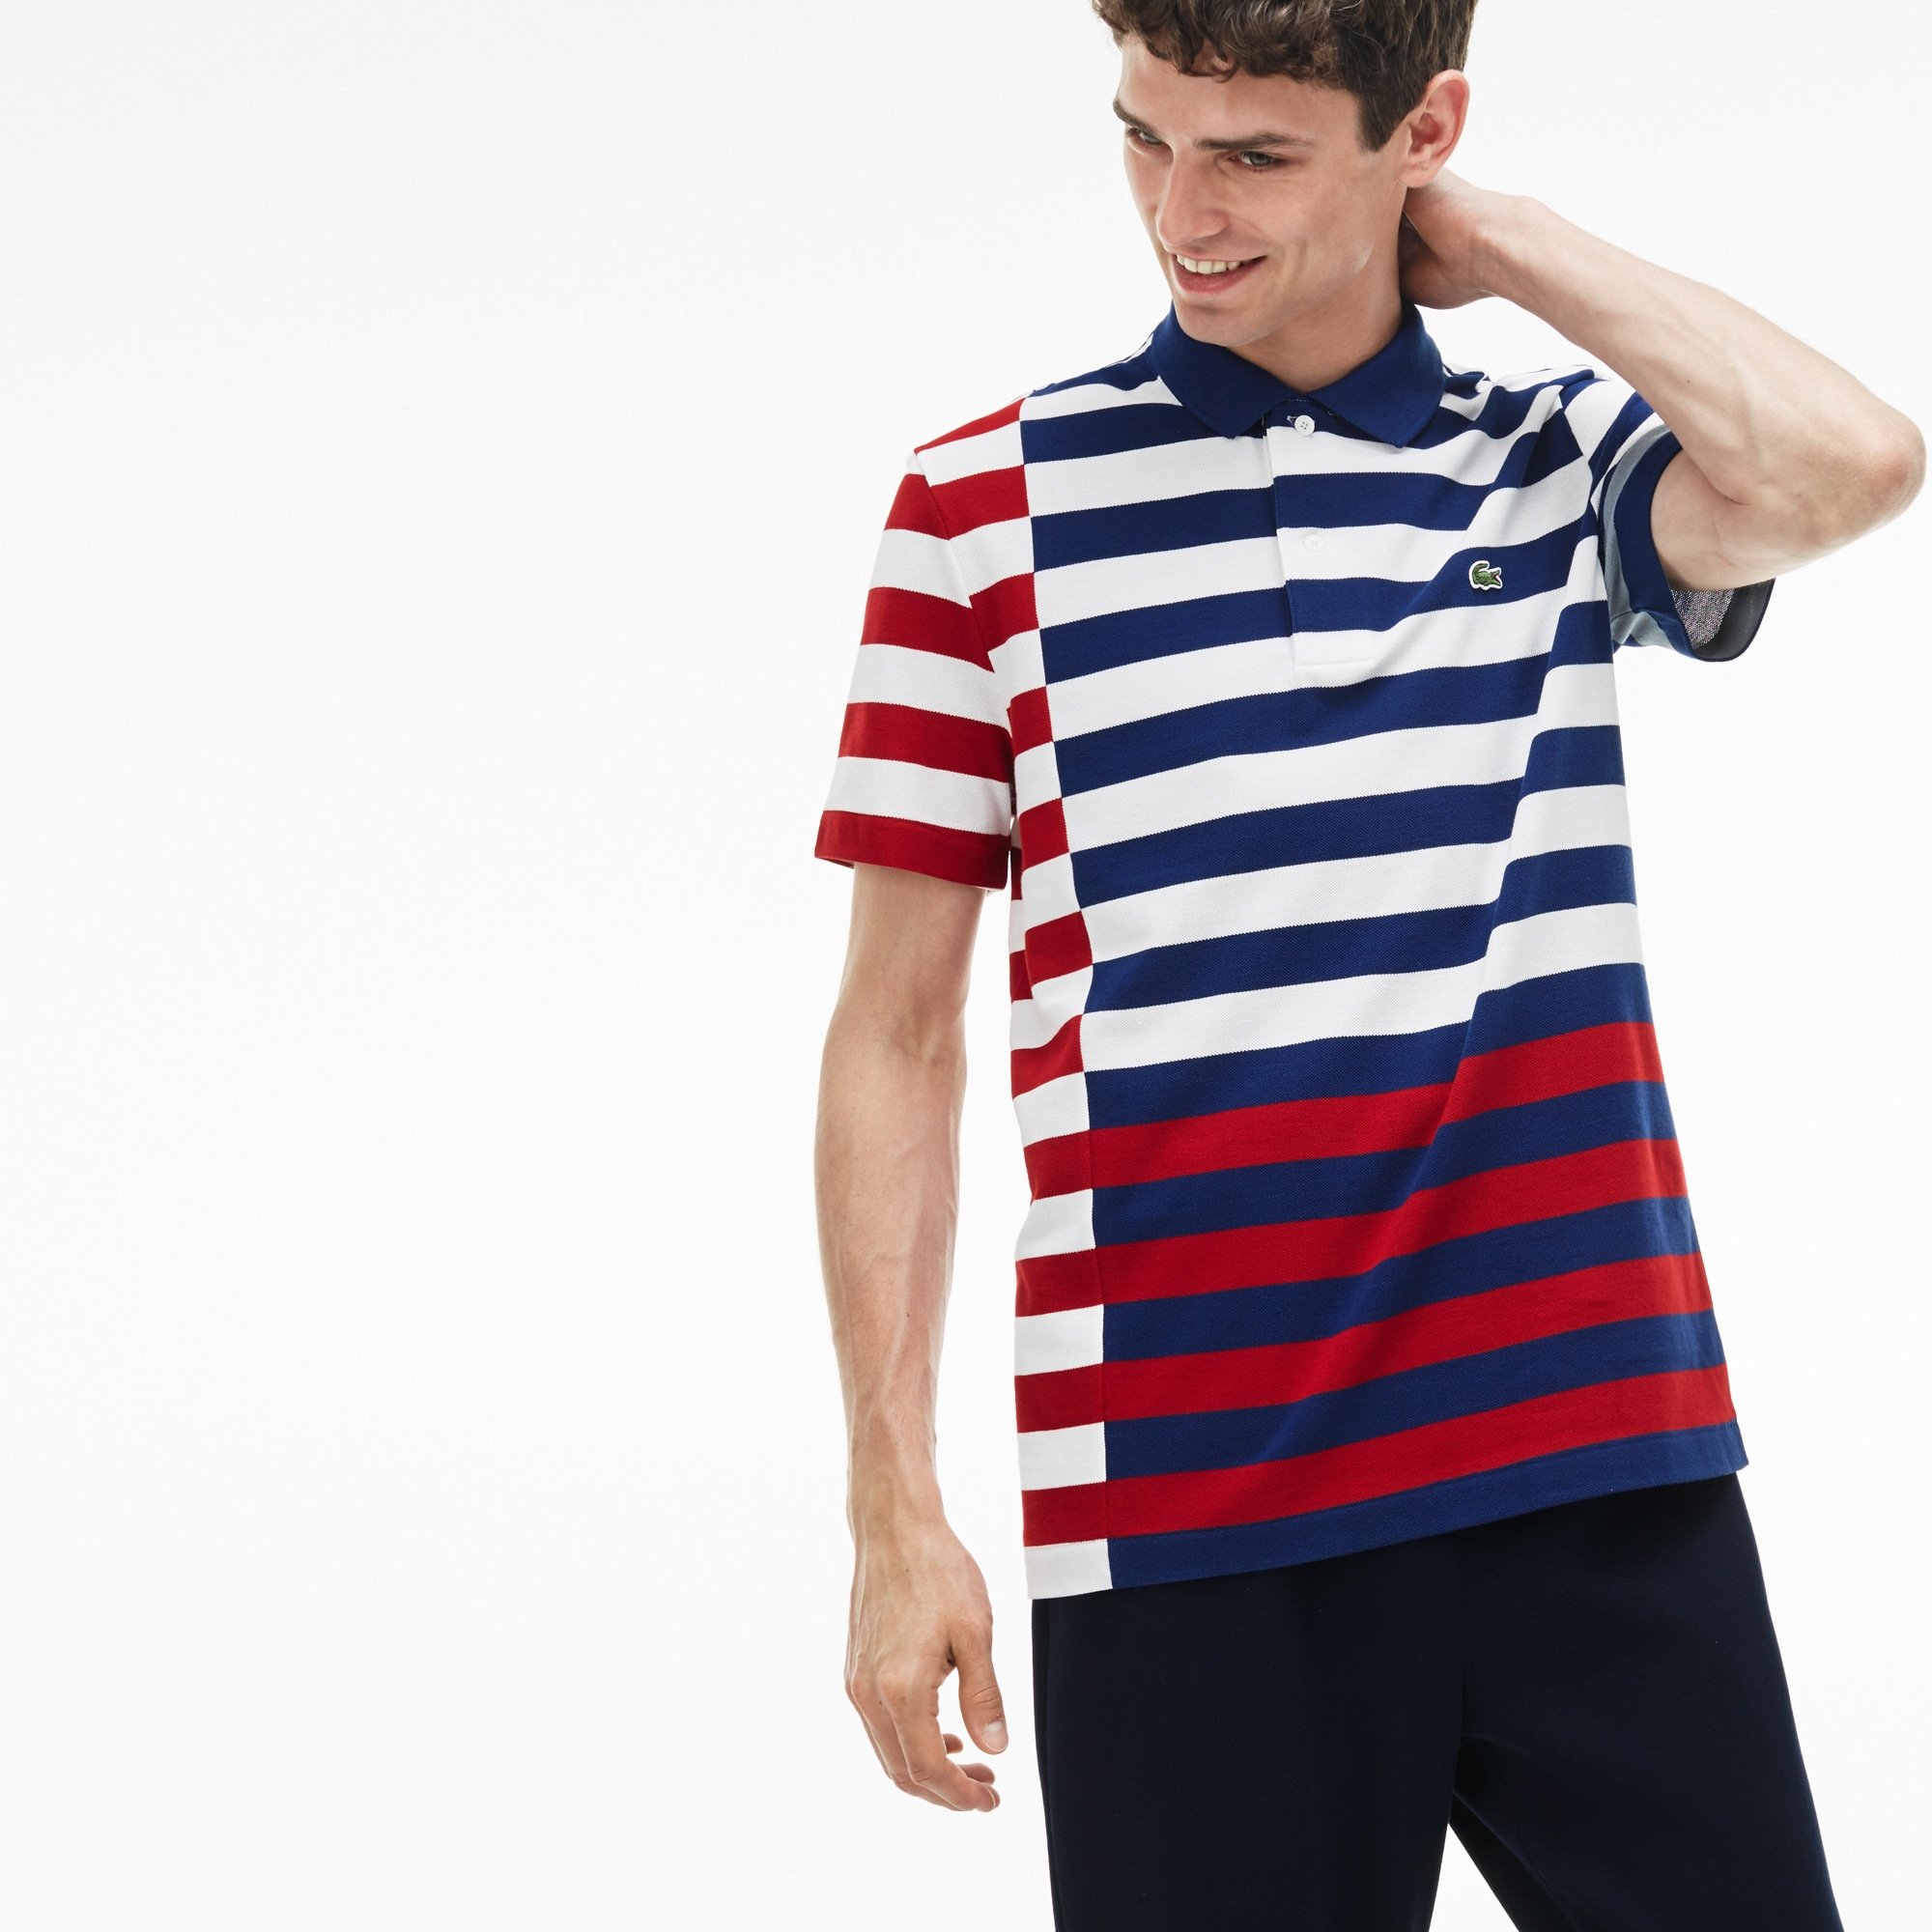 Polo Lacoste Regular Fit Masculina com Listras Coloridas Descentralizadas  ... aa26abde28